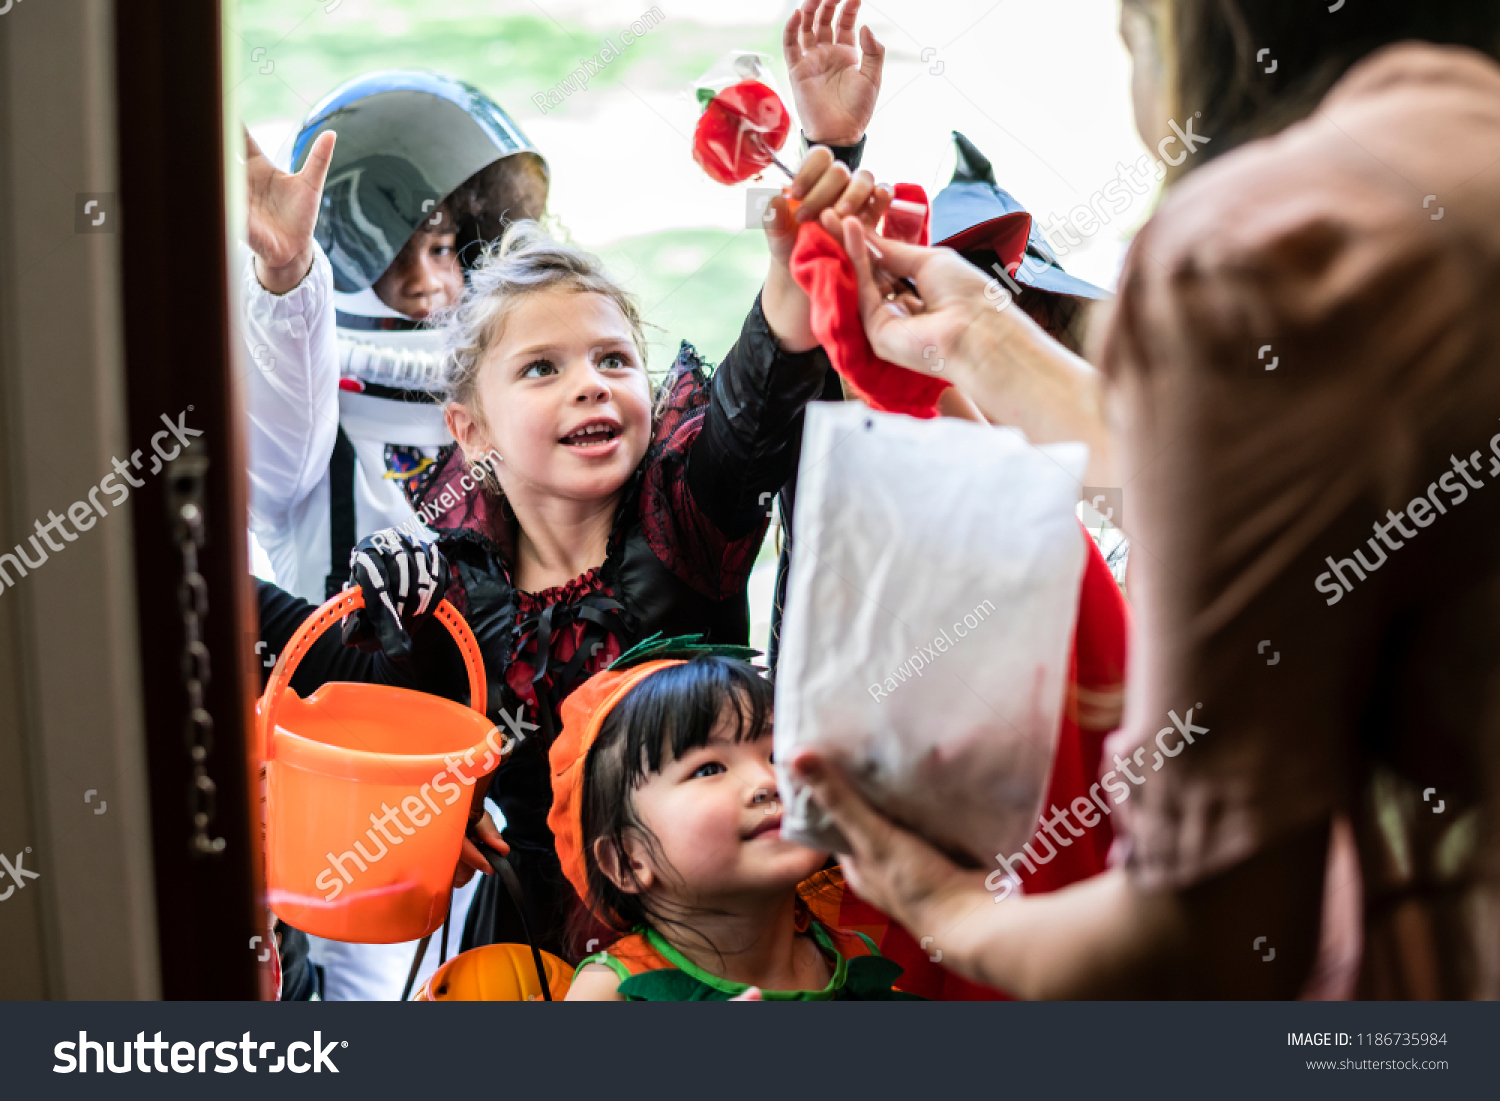 Little children trick or treating on Halloween #1186735984